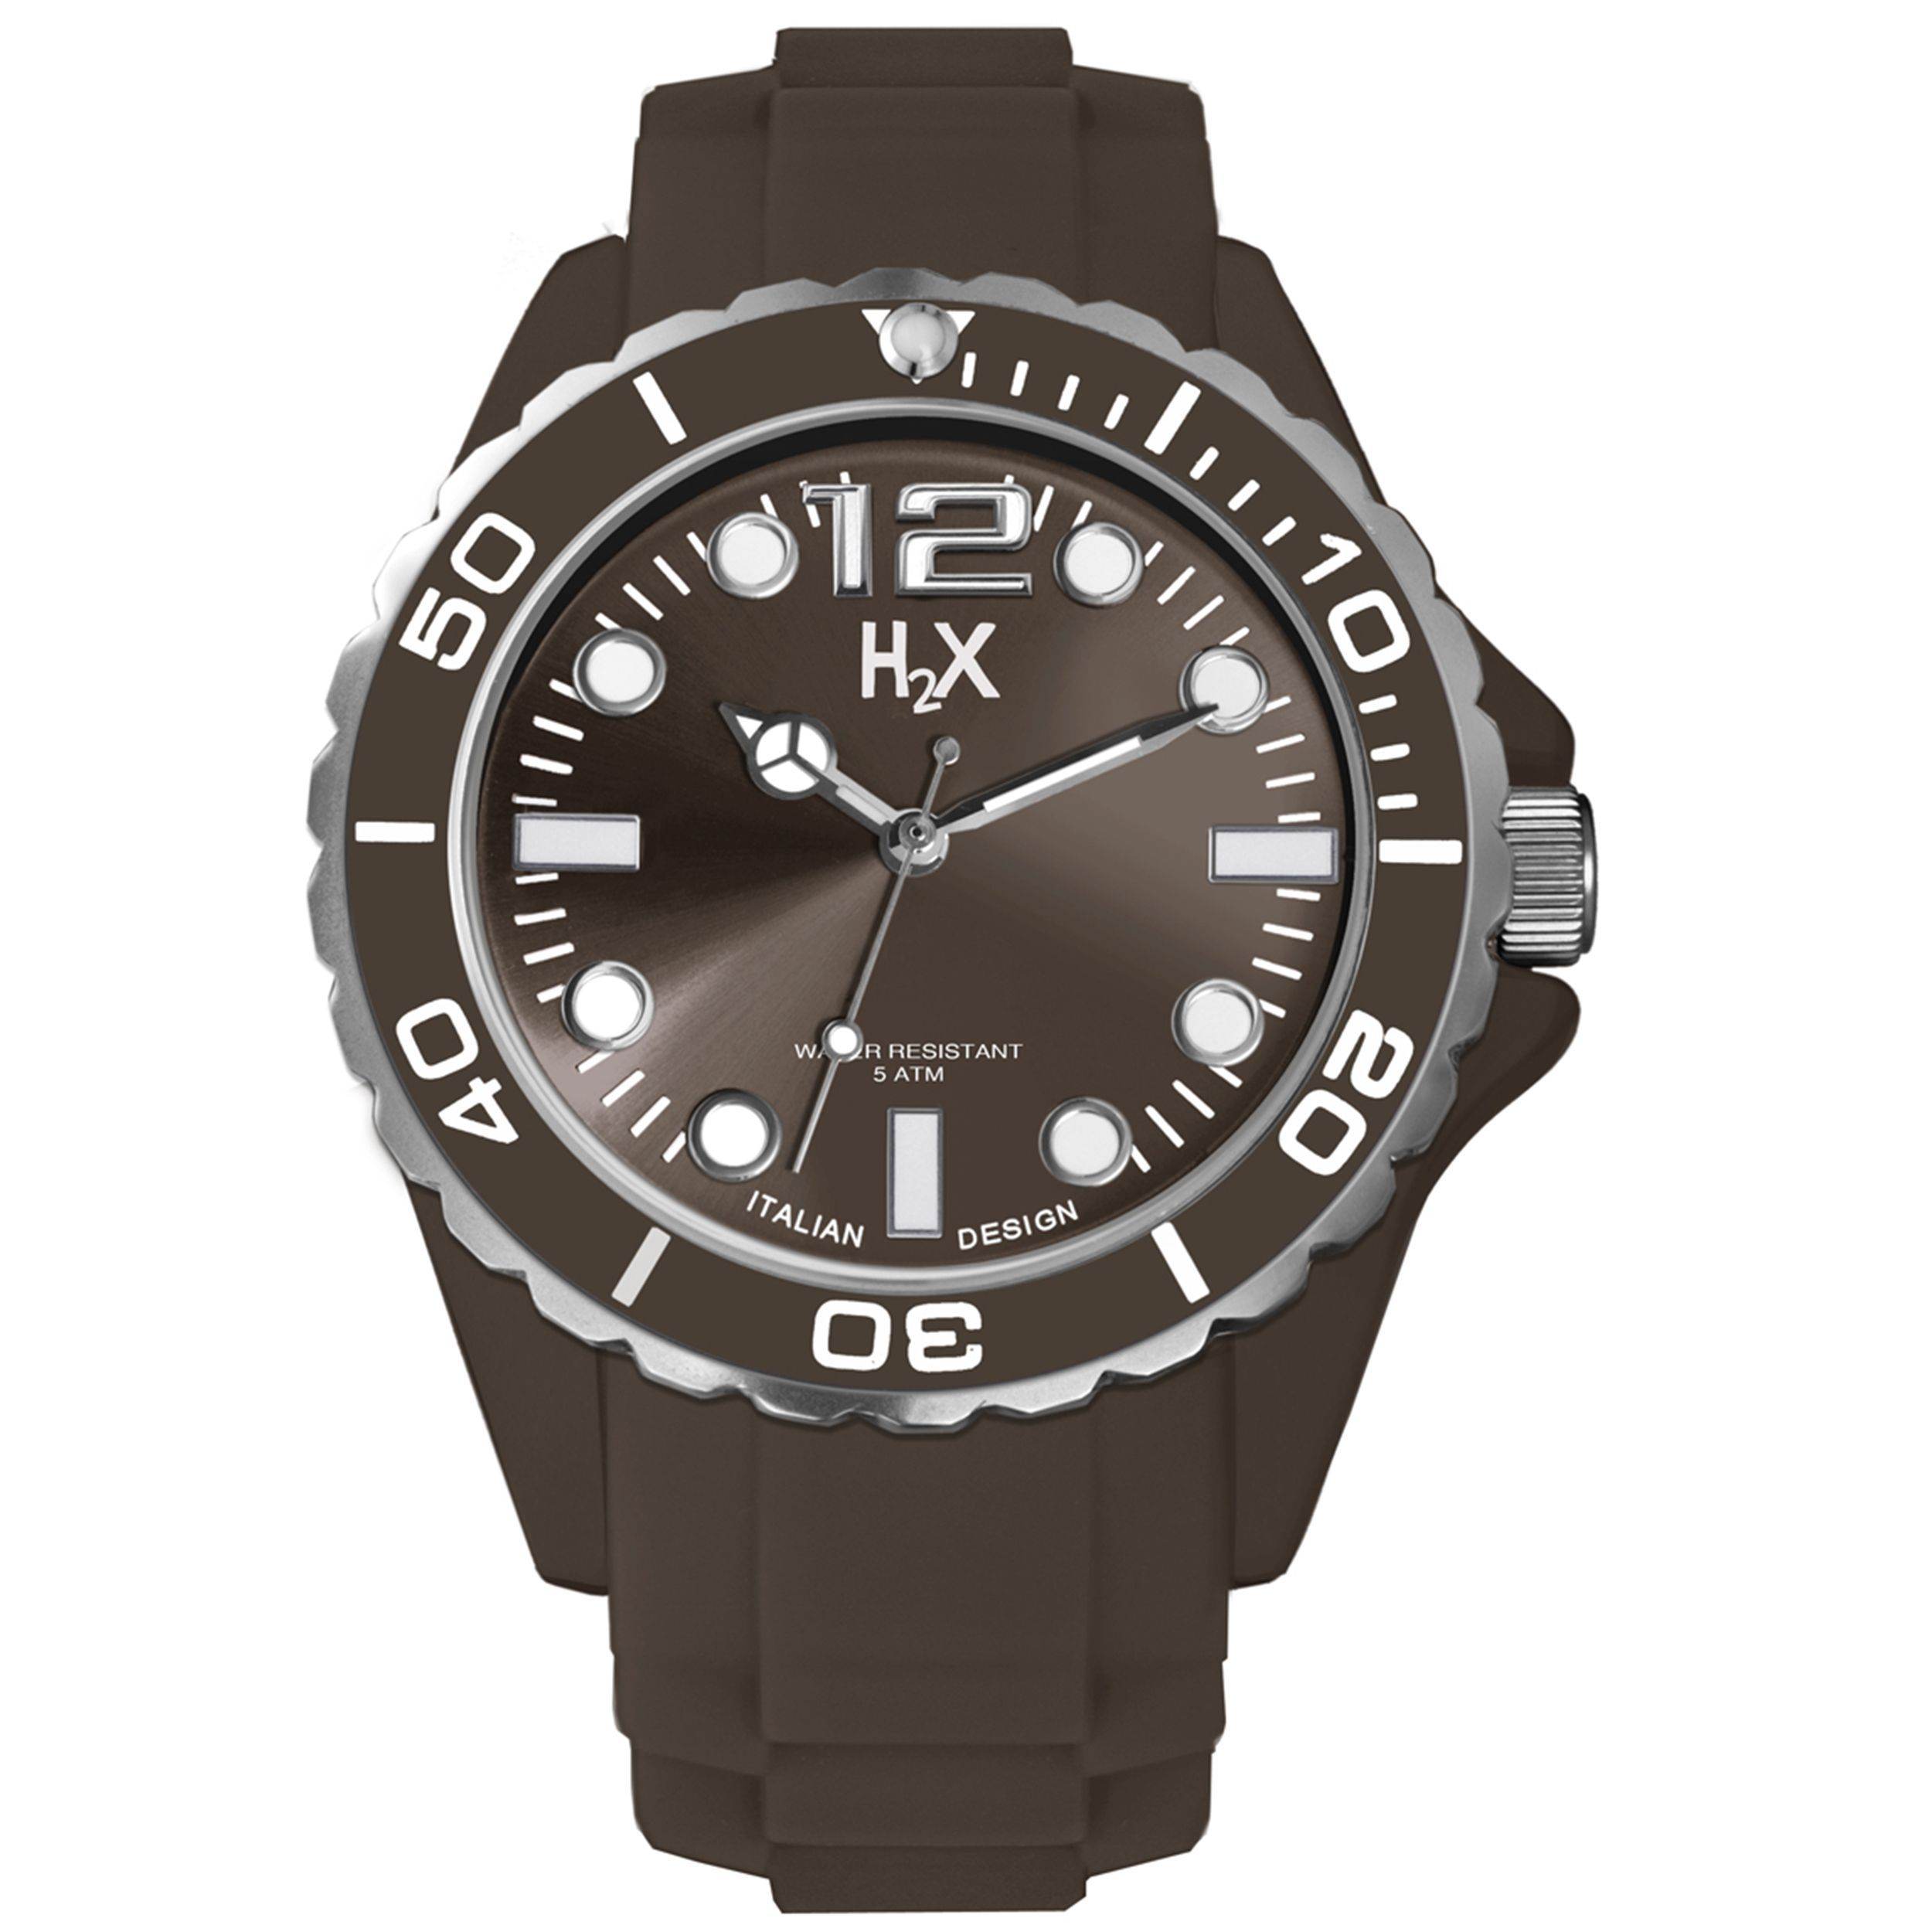 Haurex H2X Mens Reef Watch, Men's